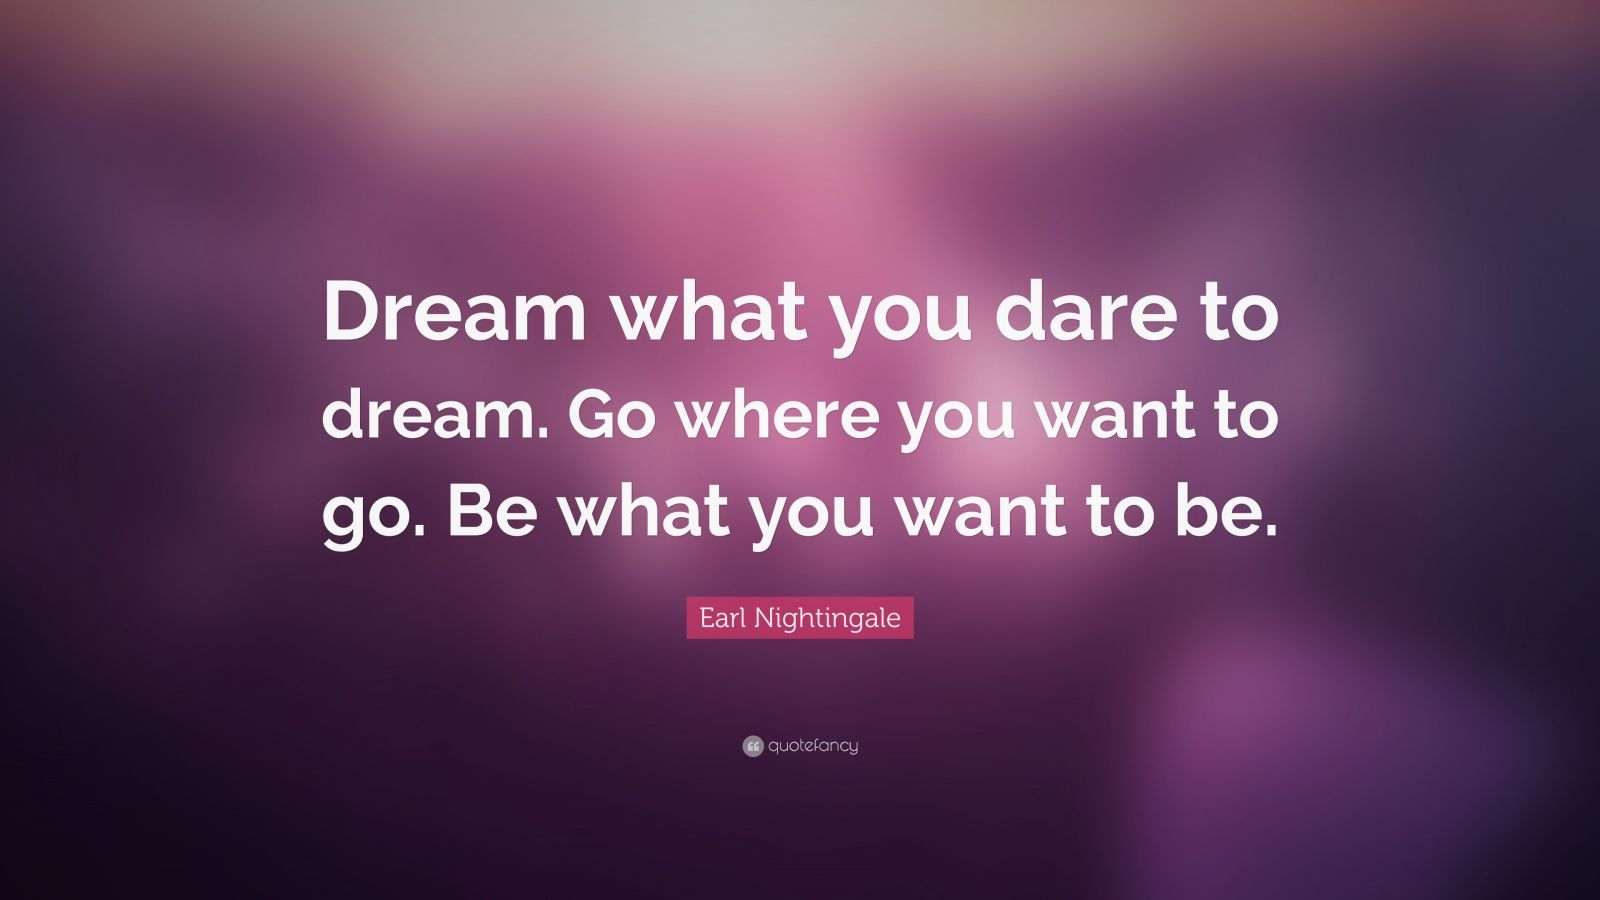 """Earl Nightingale Quote: """"Dream what you dare to dream. Go where you want to go. Be what you want to be."""""""